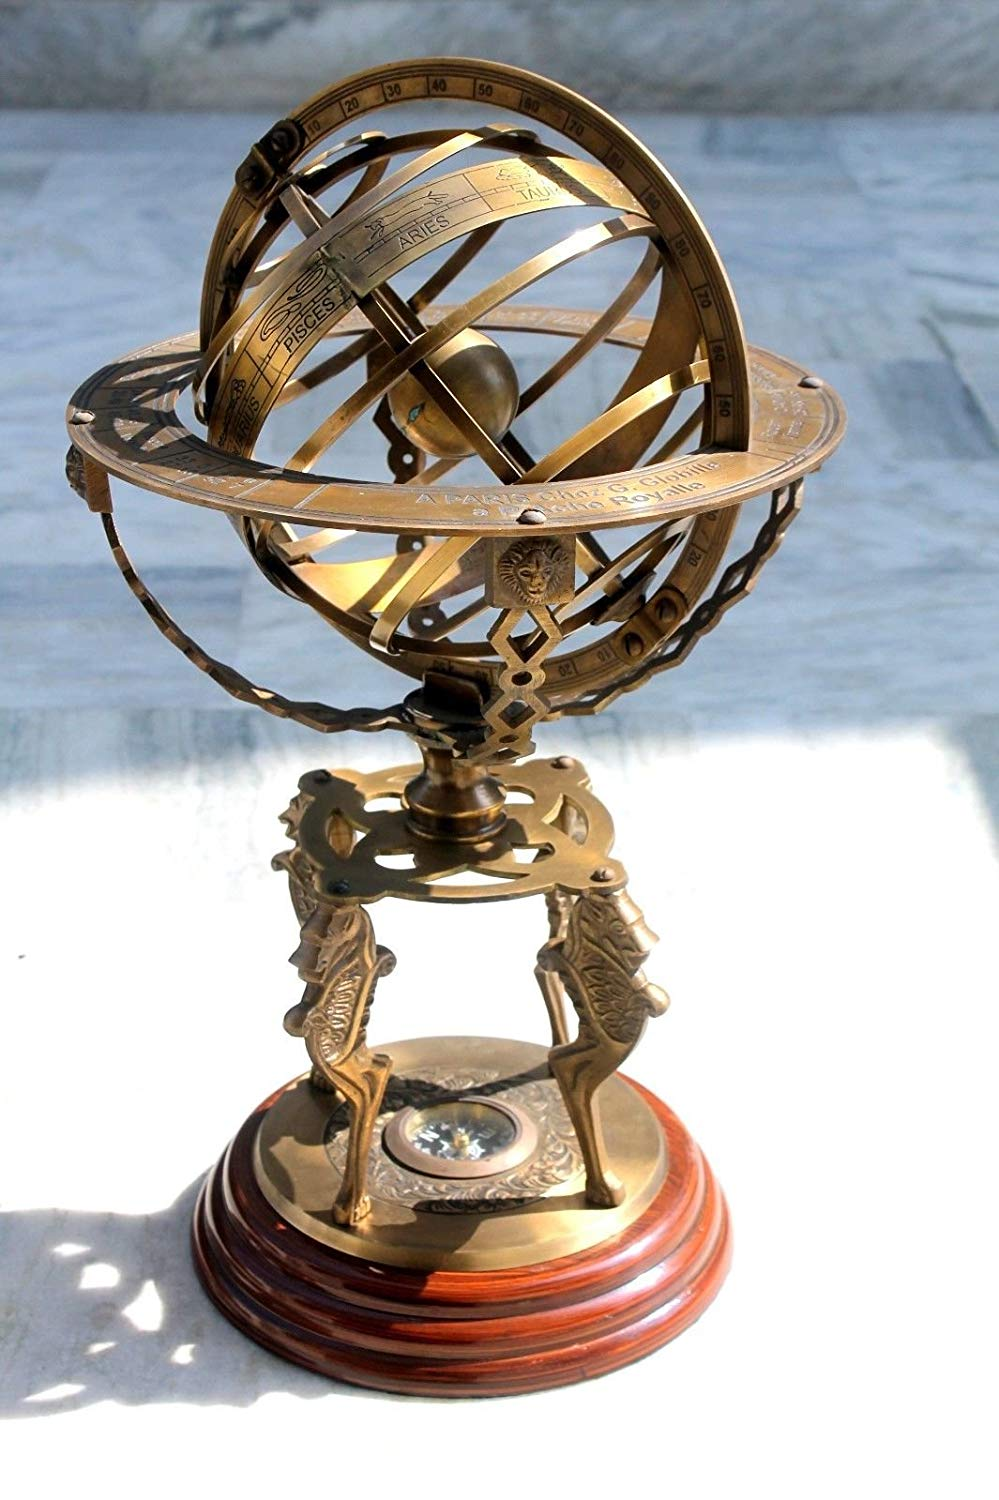 Armillary Globe By Era Collection Armillary Sphere| Large Armillary| Zodiac Armillary|Decor Outdoor| Vintage Brass Antique Style Nautical Garden Decorative Office, Room With Compass on Base Gift Item.